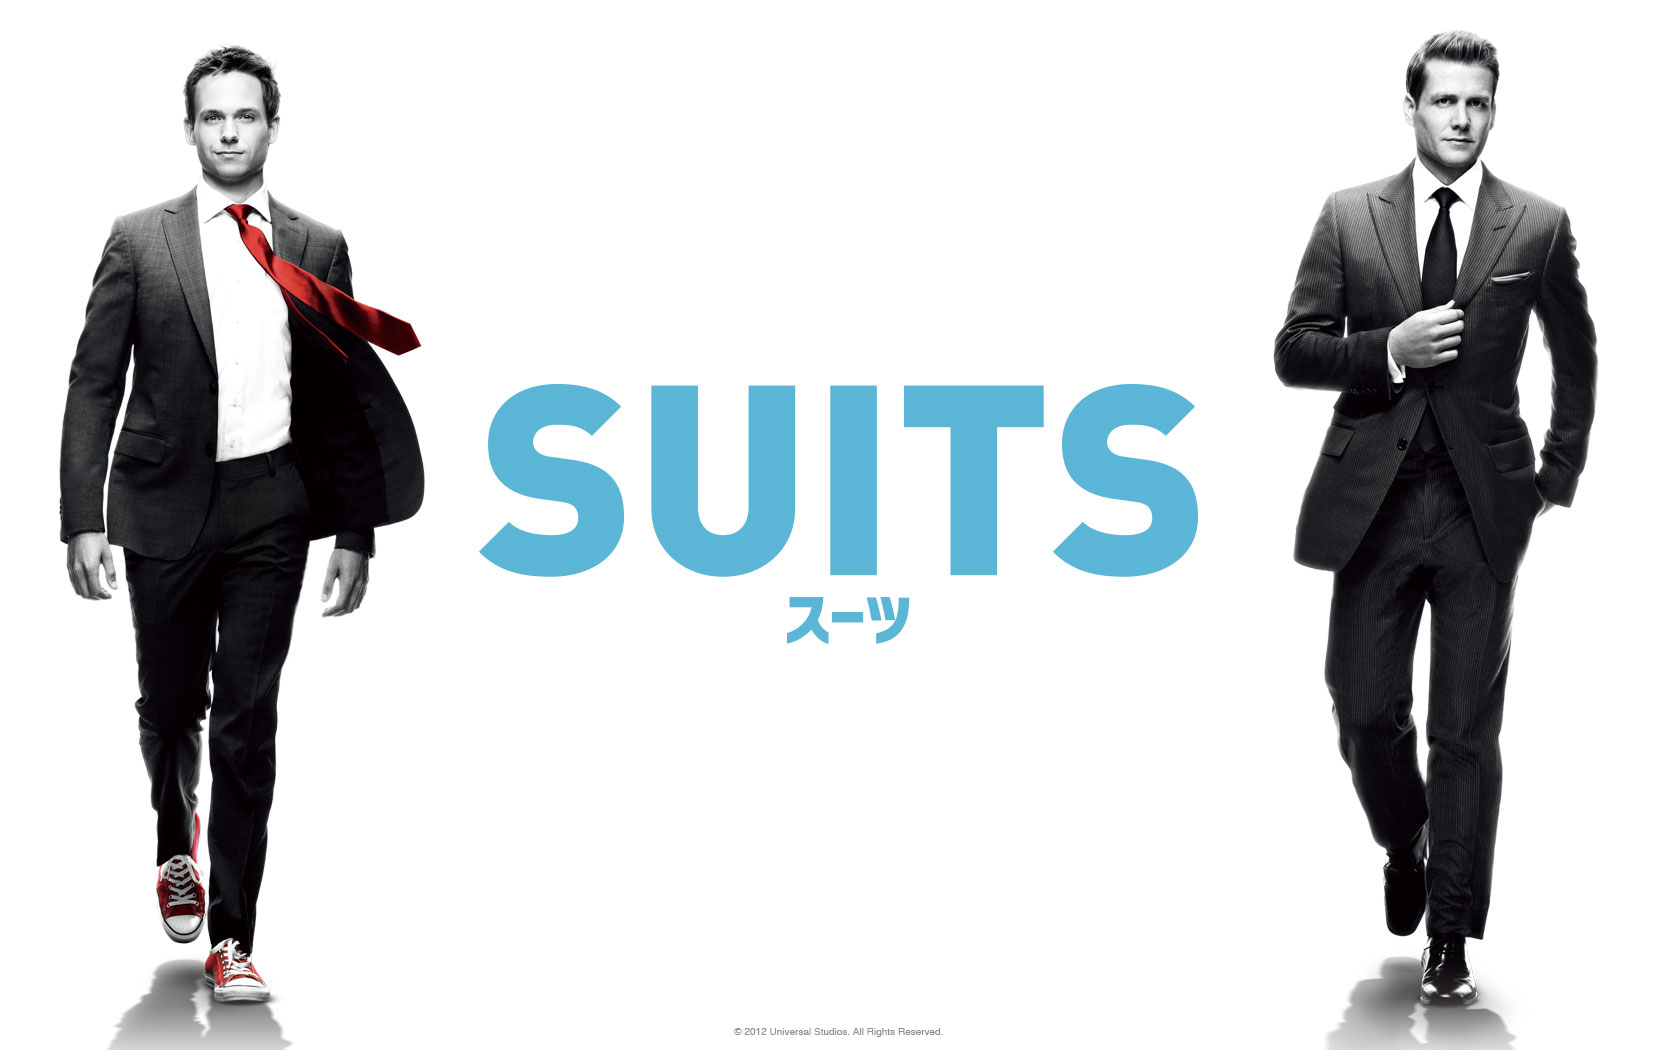 http://www.suits-tv.jp/assets/images/SUITS02_1680x1050.jpg